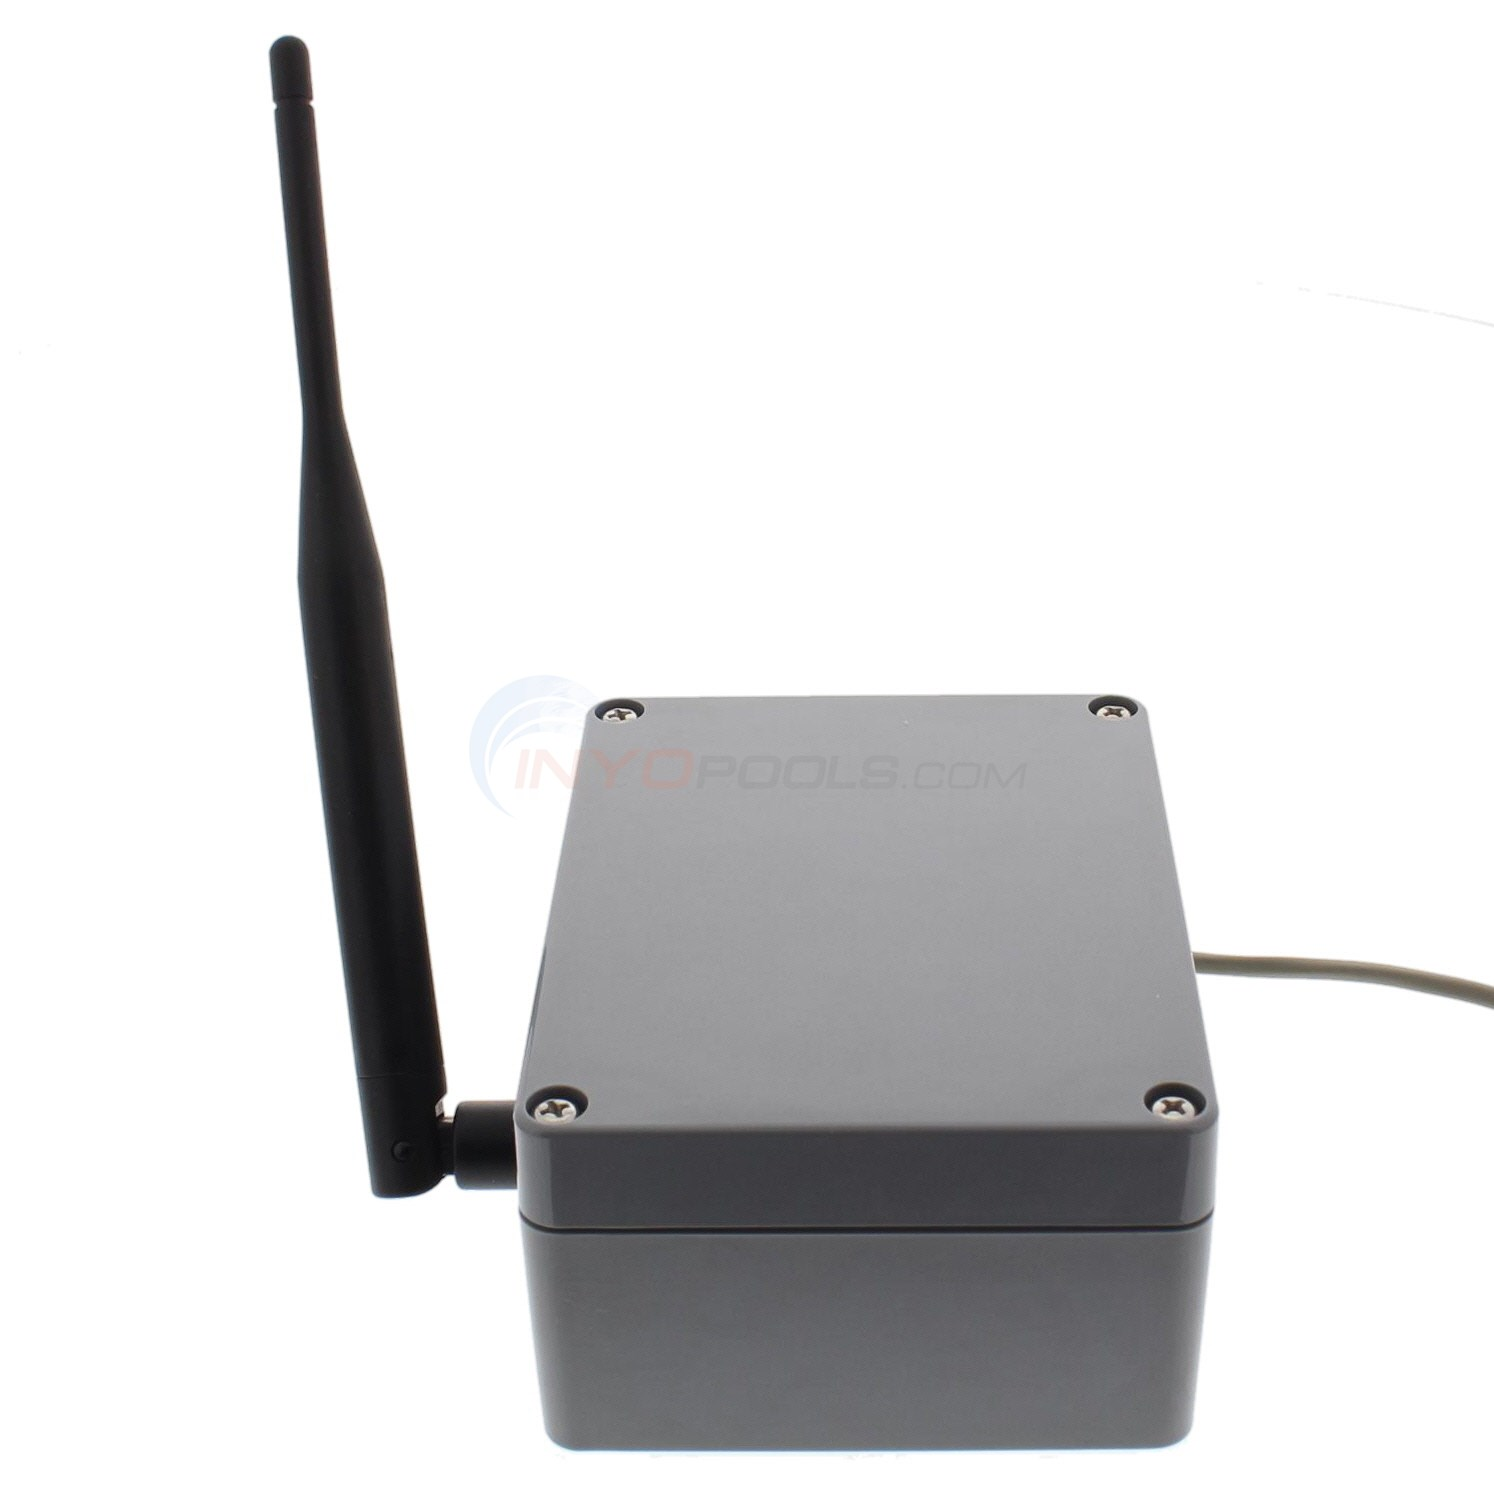 Jandy RS Wireless Outdoor J-Box Kit - 8241